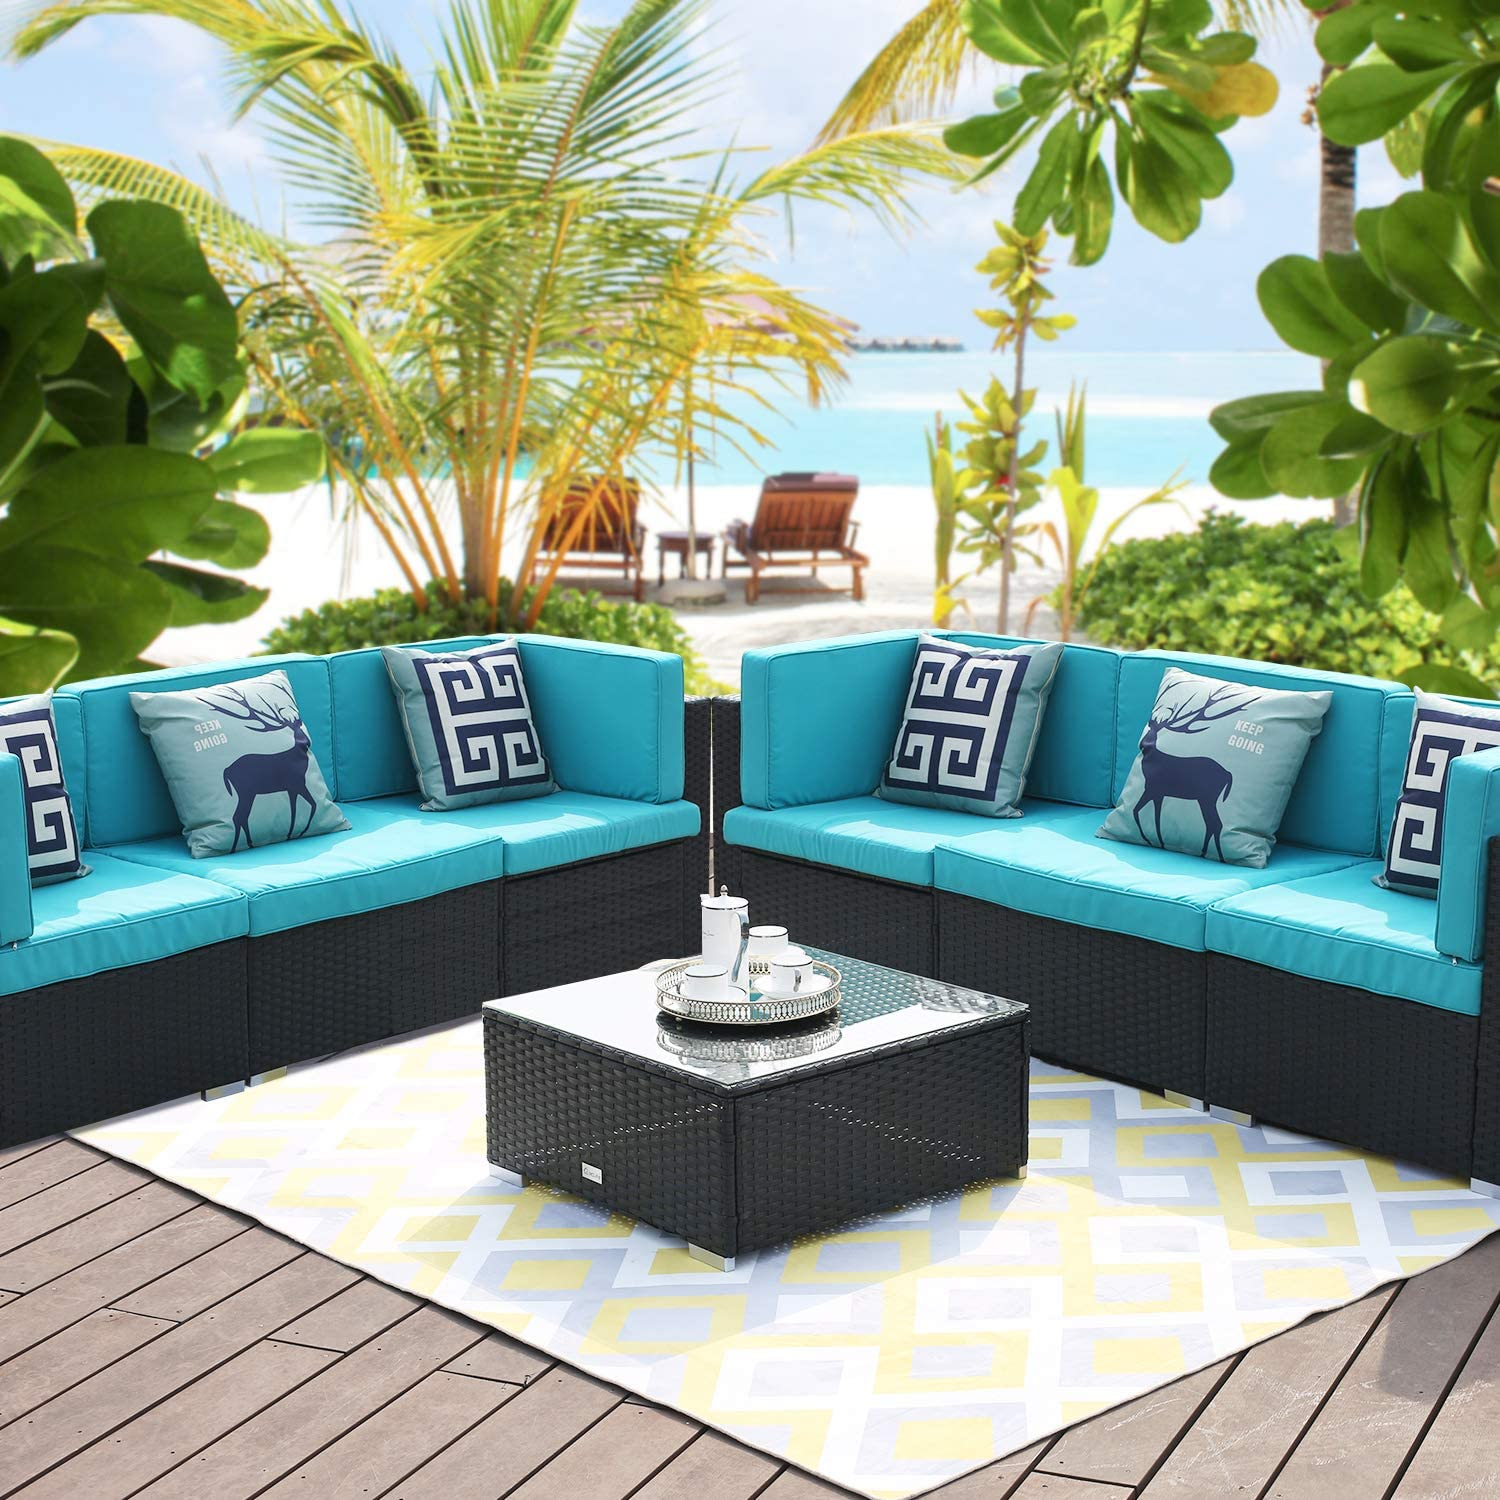 LUCKWIND Patio Conversation Sectional Sofa Chair Table – 7 Piece All-Weather Black Checkered Wicker Rattan Seating Cushion Patio Ottoman Modern Glass Coffee Table Outdoor Accend Pillow 300lbs Green